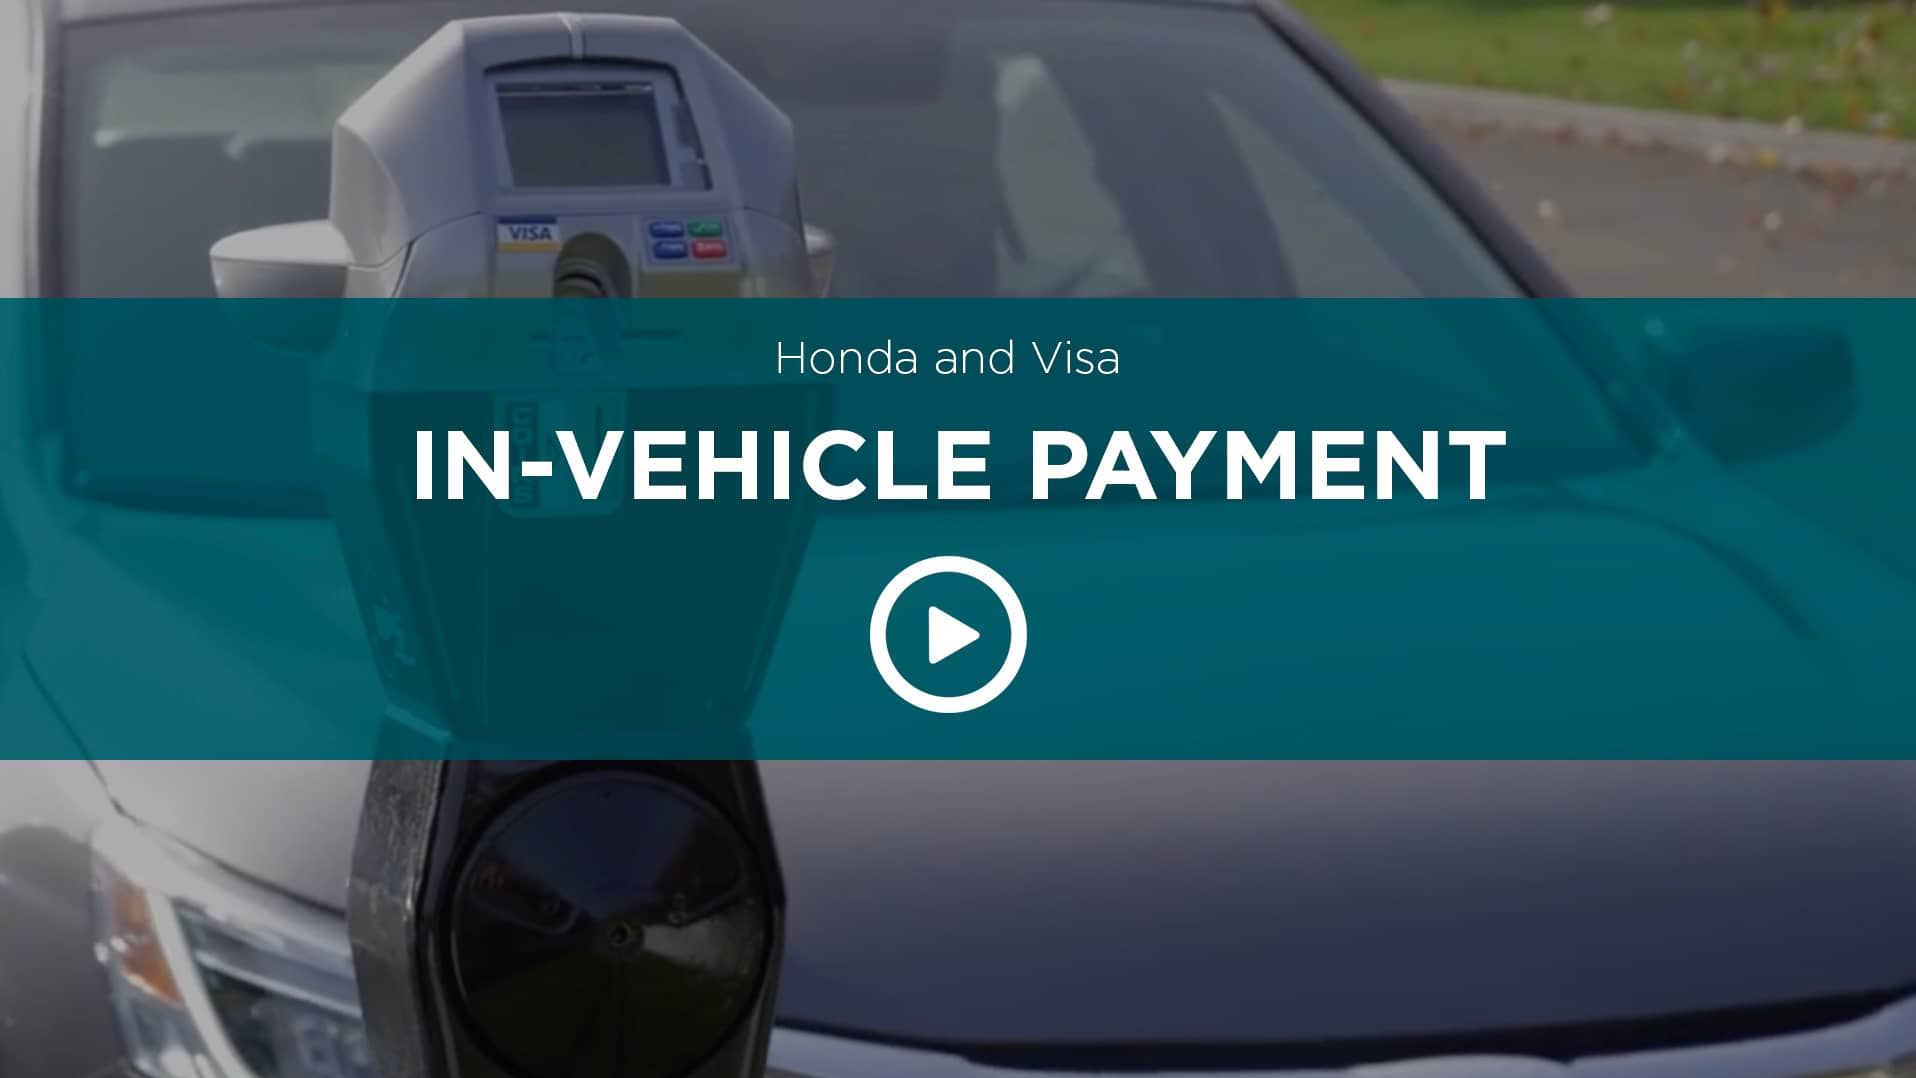 In Vehicle Payment Parking